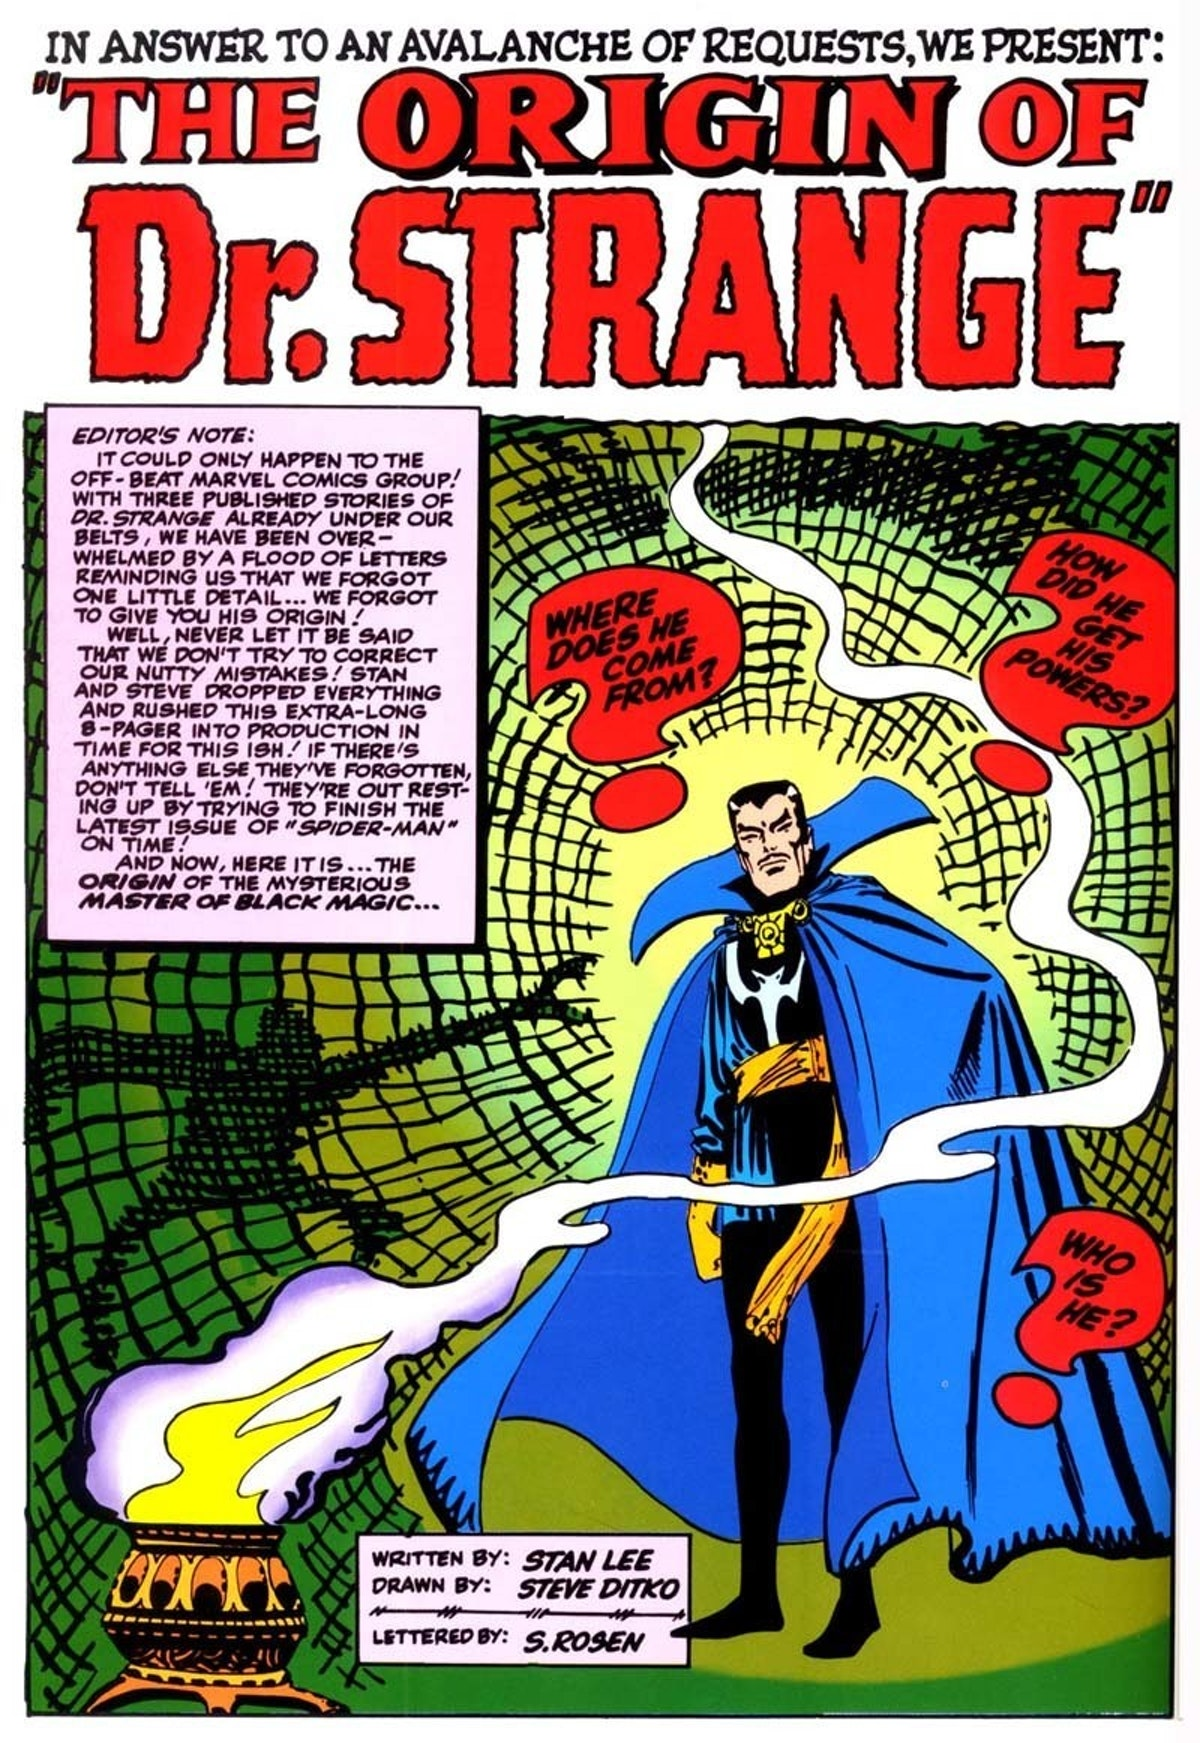 From 'Strange Tales' #115